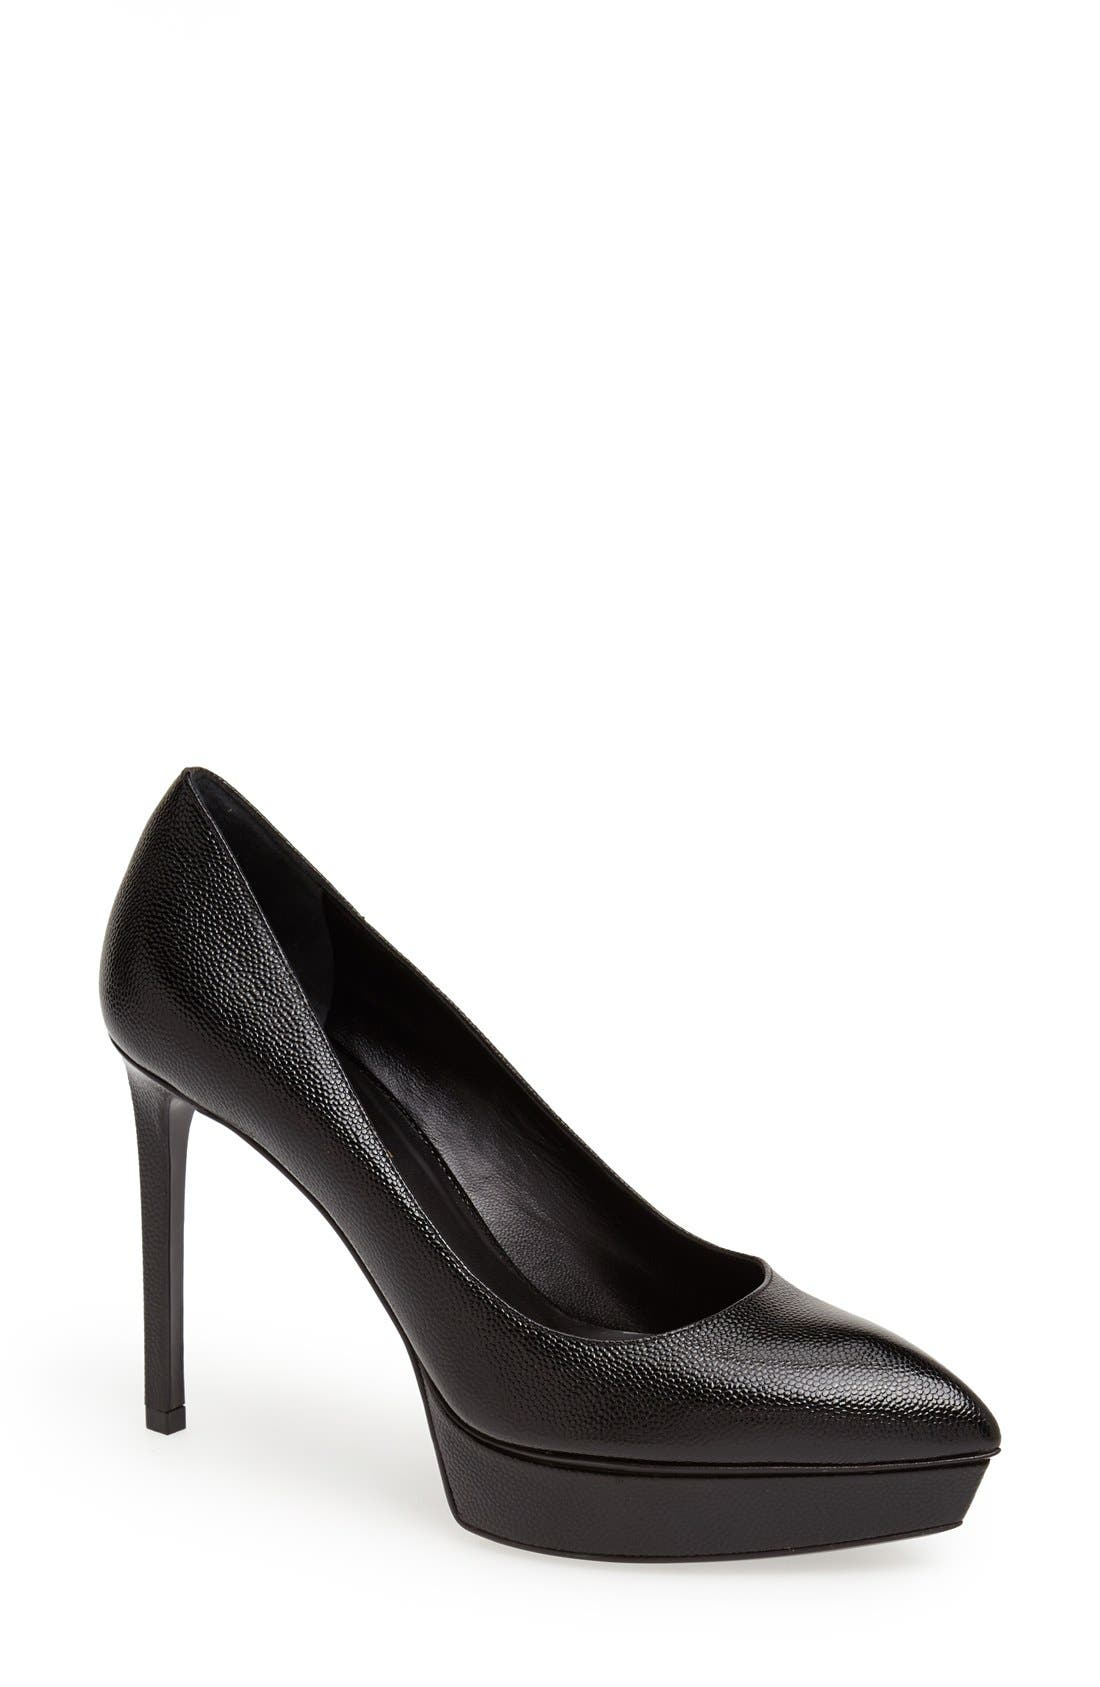 'Janis' Pointy Toe Platform Pump,                         Main,                         color, 001